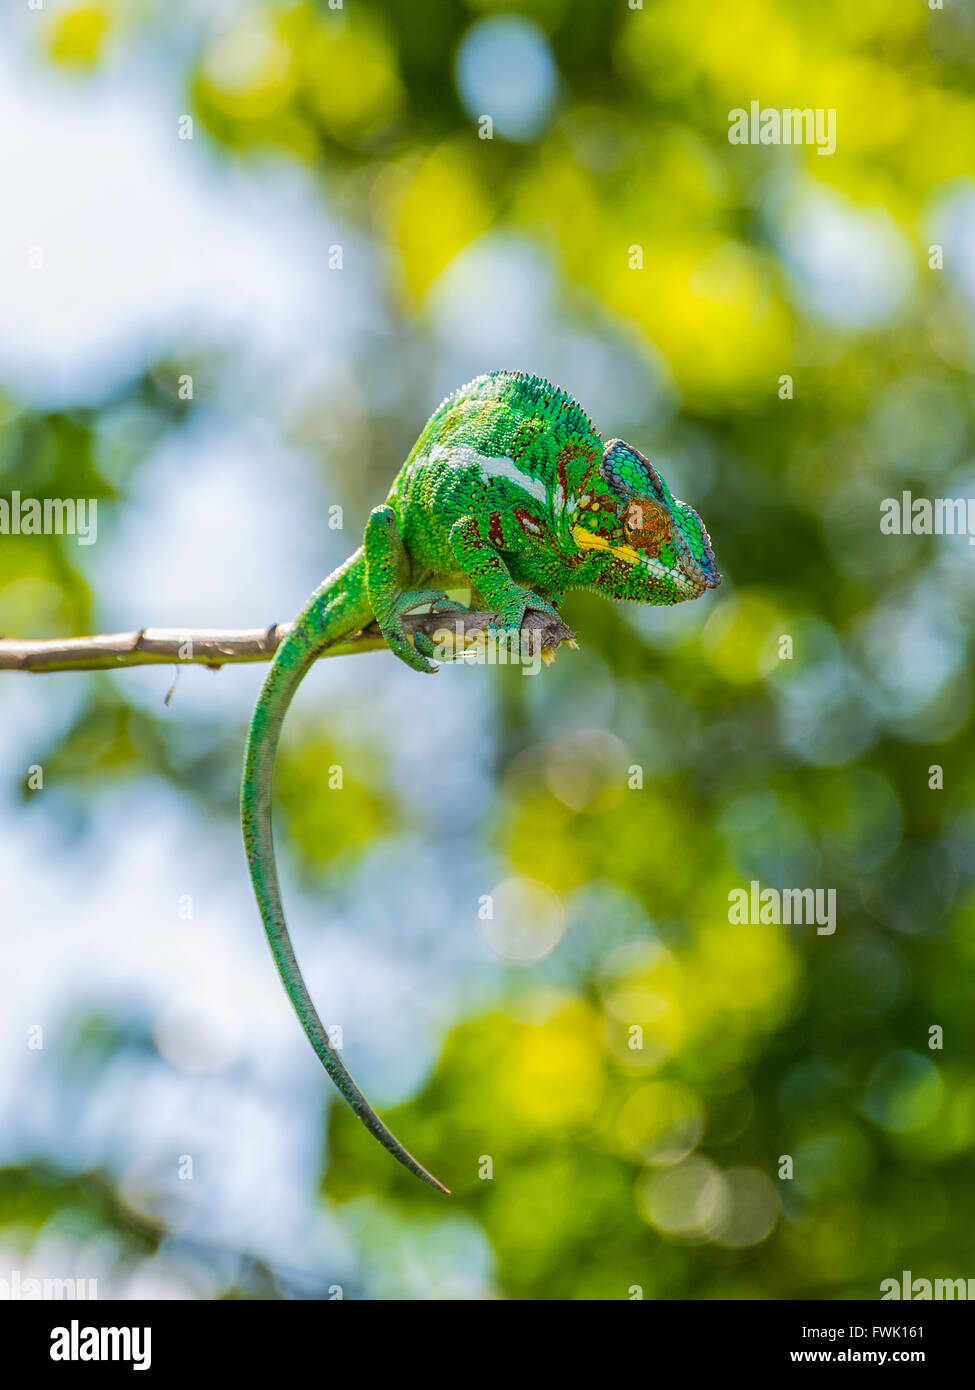 Chameleon sitting on a branch - Stock Image